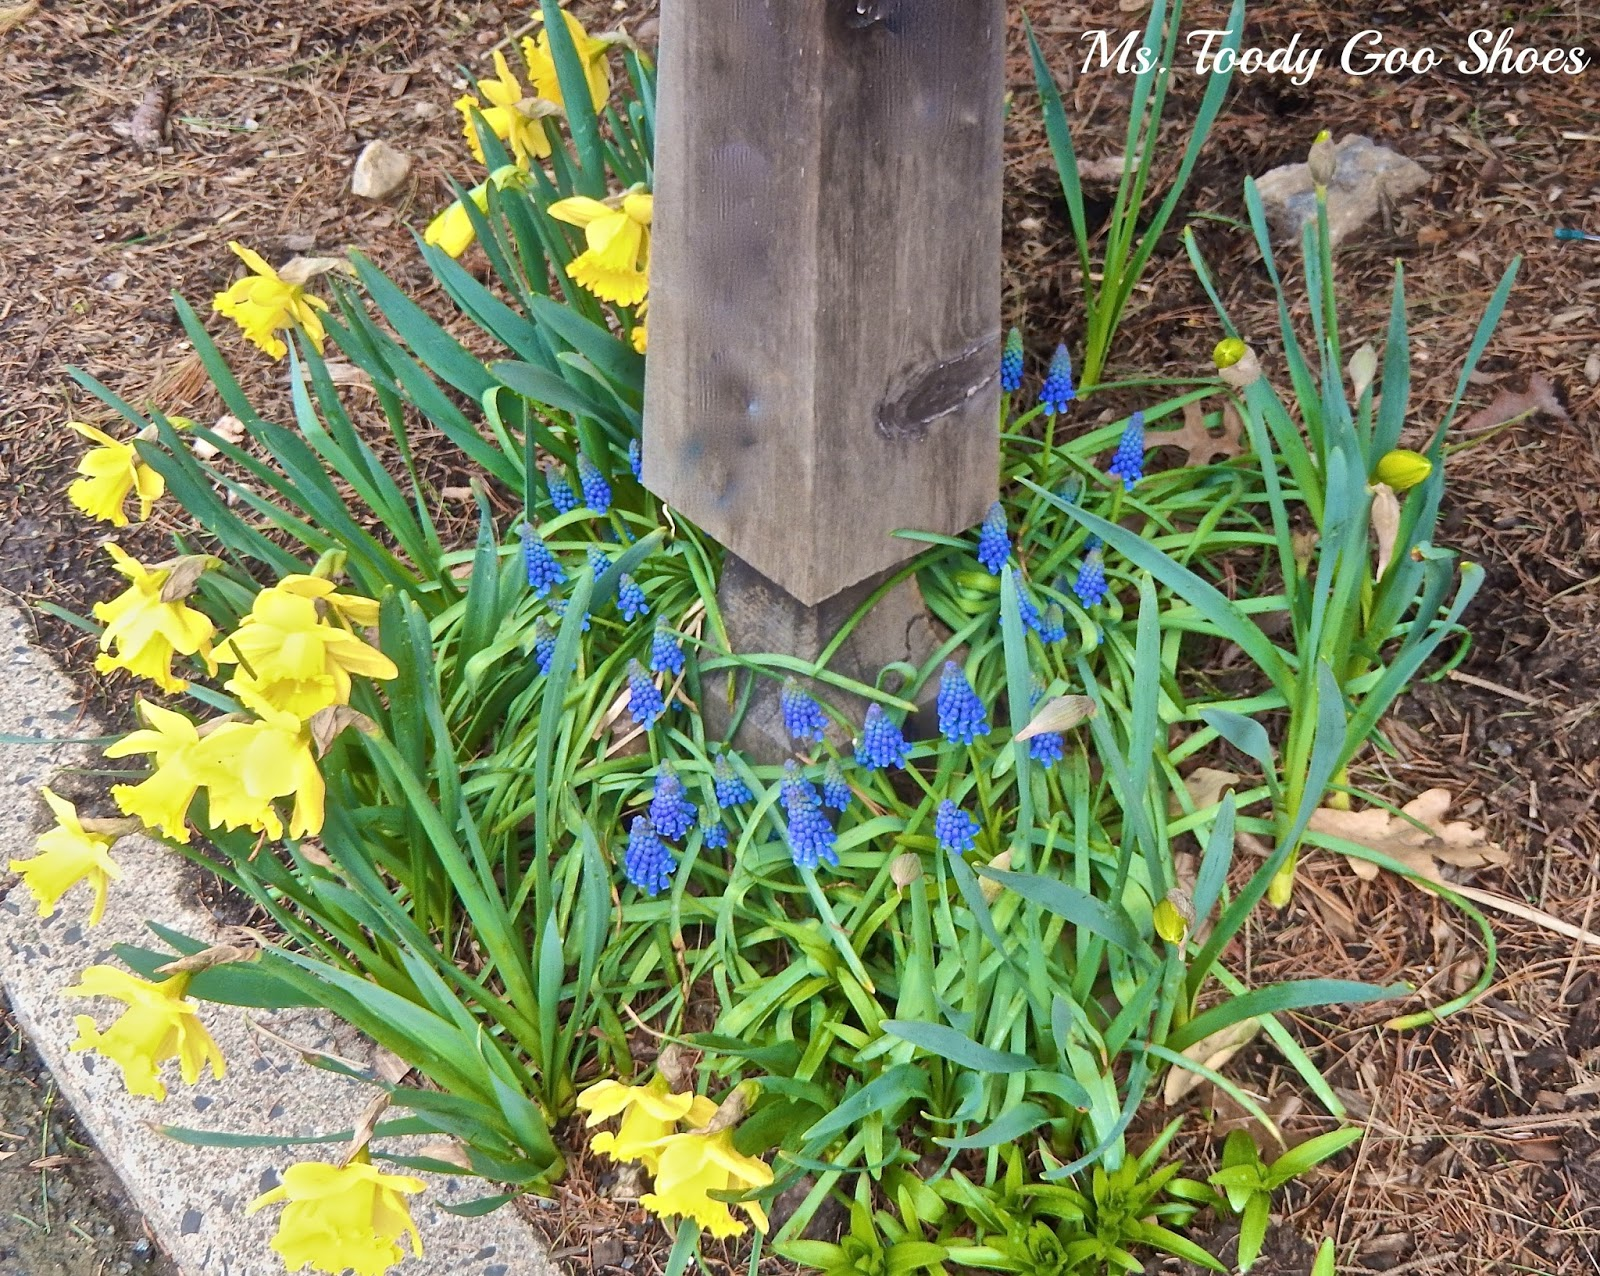 Spring Around The Mailbox: Yellow Daffodils & Purple Grape Hyacinths are a perfect combo   --- Ms. Toody Goo Shoes